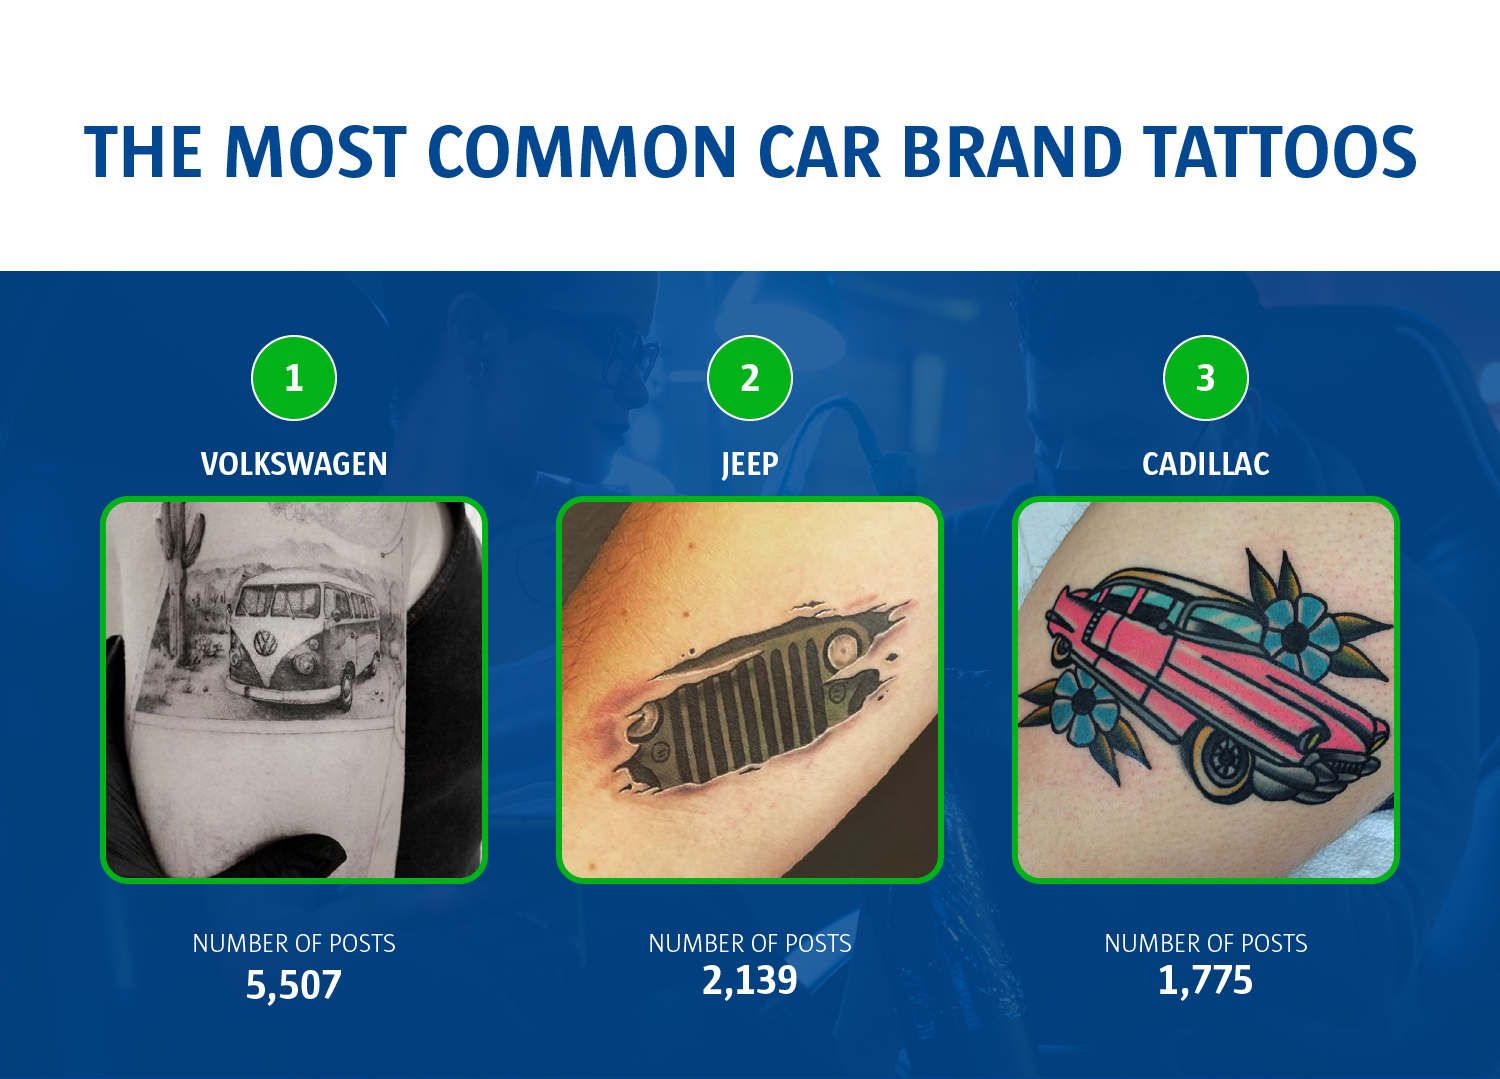 The most common car brand tattoos